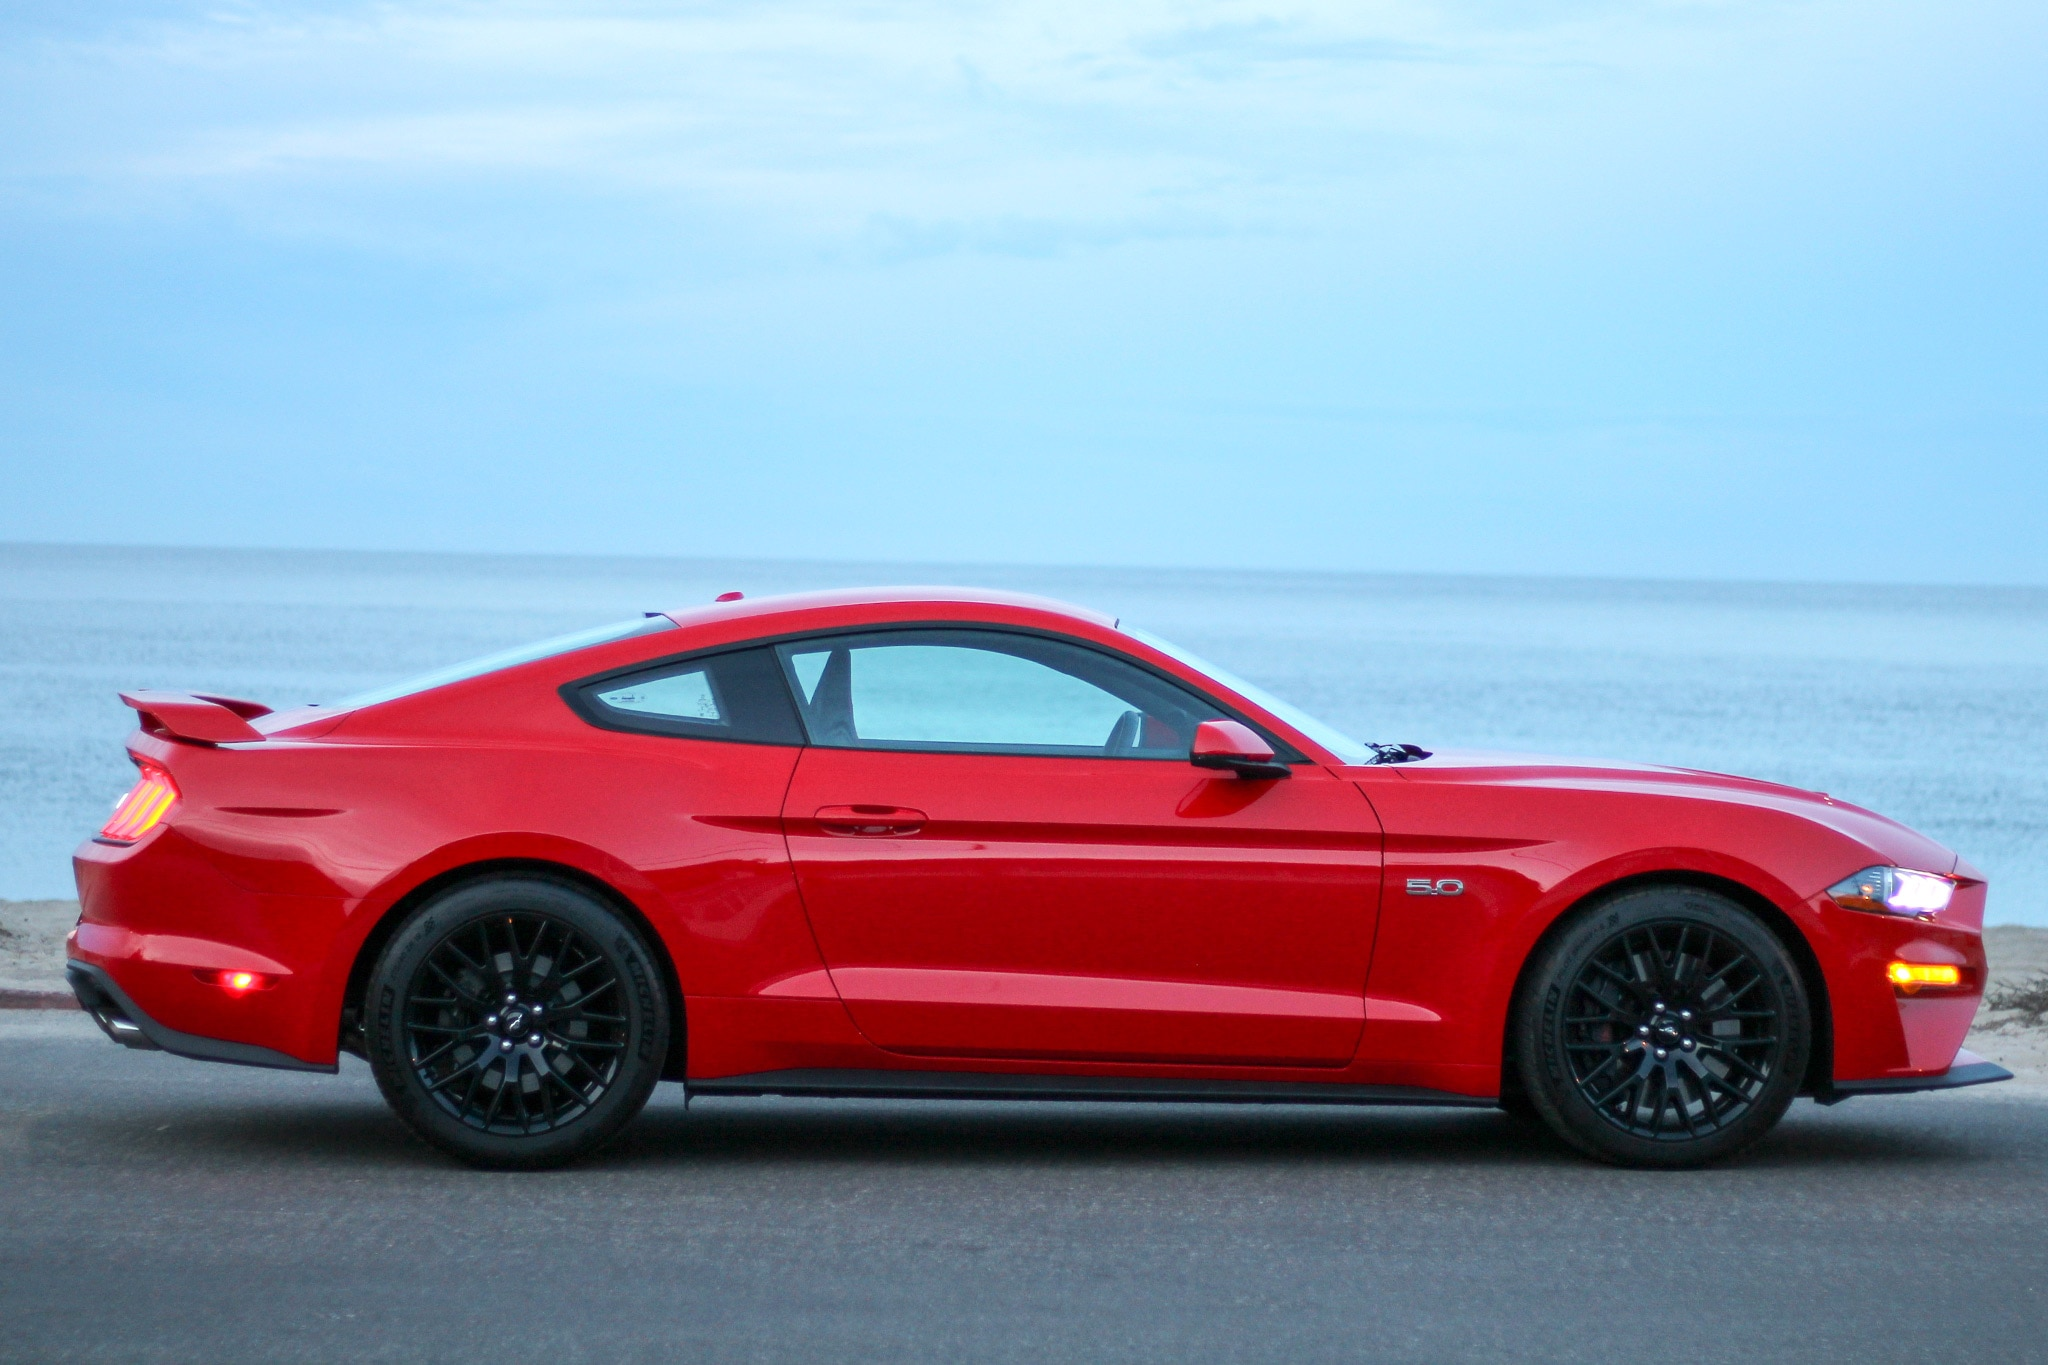 2018 ford mustang gt premium first drive review automobile magazine rh automobilemag com Ford Mustang Manual Transmission Ford Mustang GT